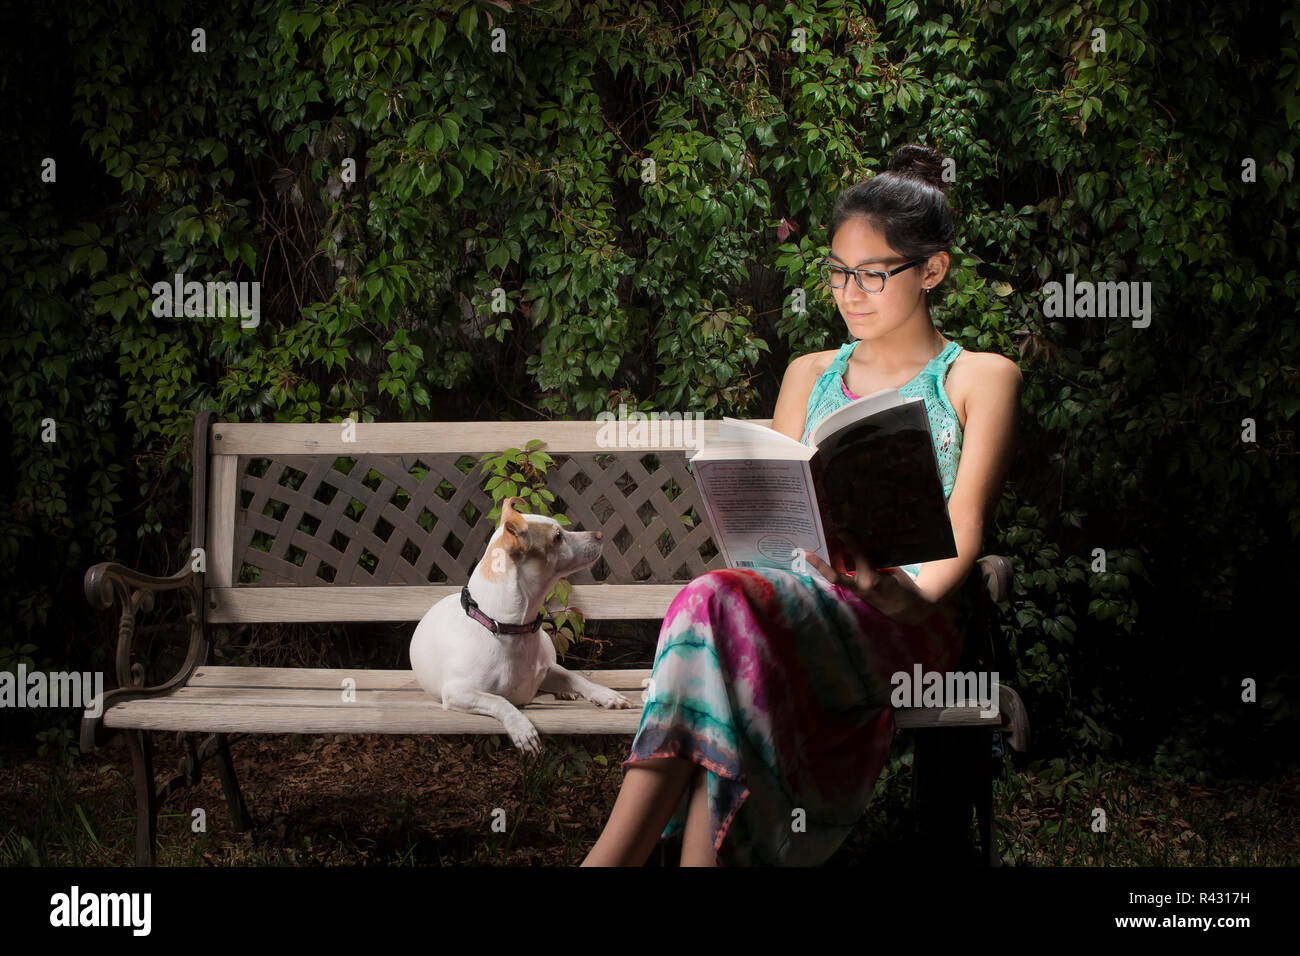 Pets in the home as family member. Latin -Maxican Teenager reading a book and posing with her dog for a portrait at home in the backyard - Stock Image